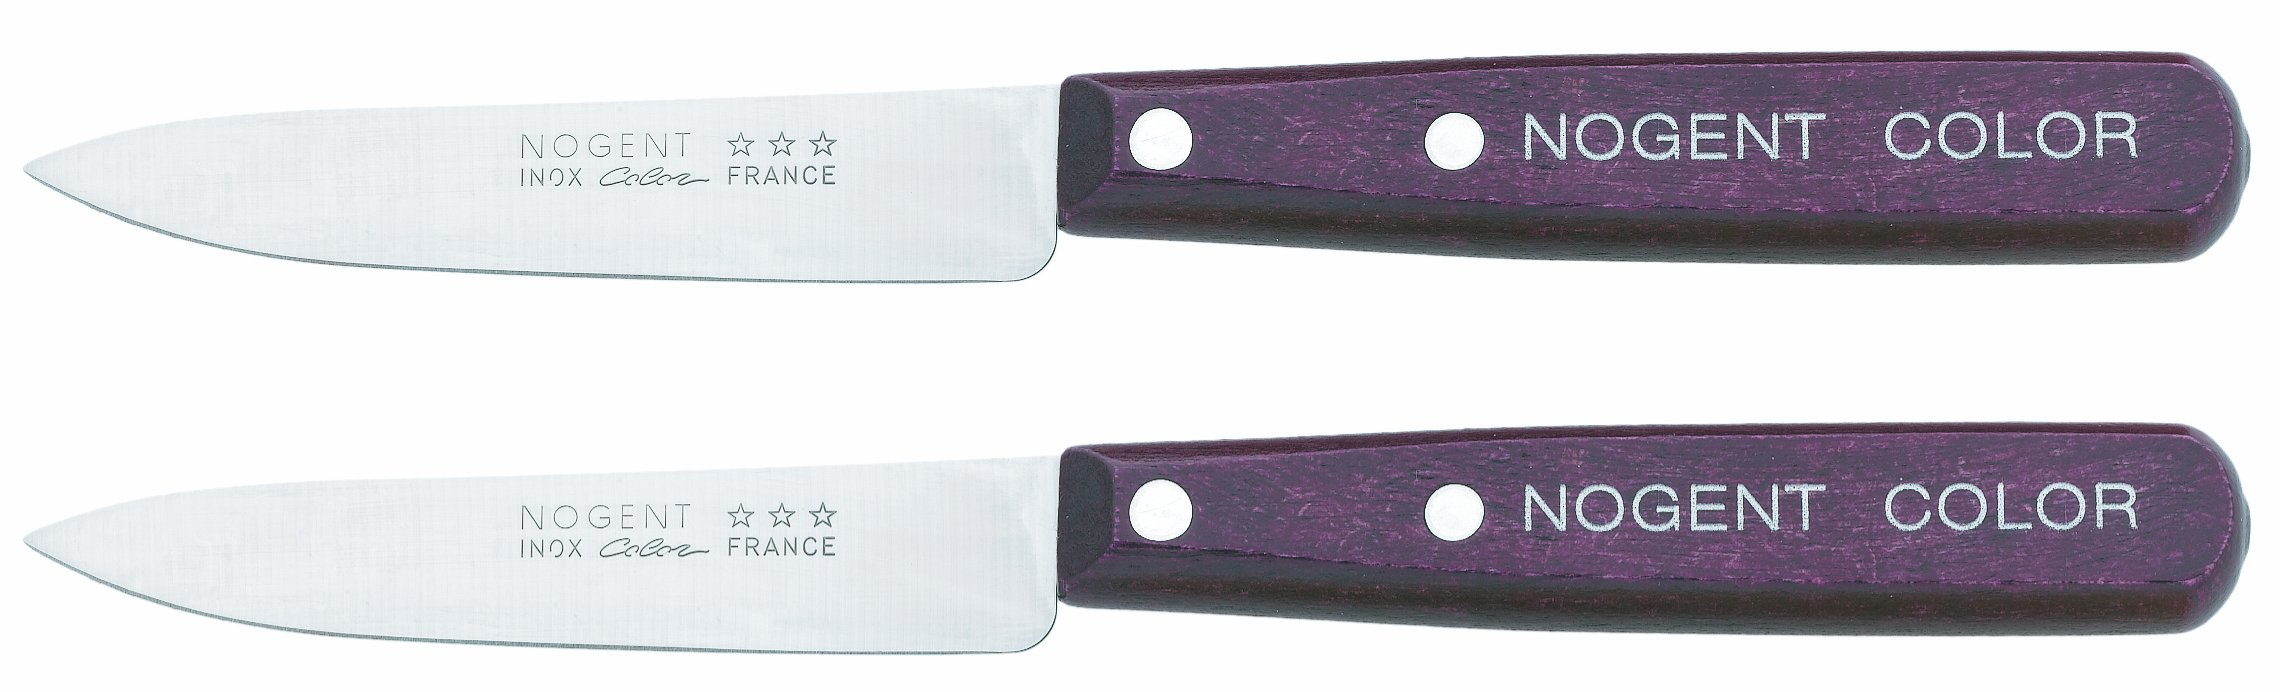 Nogent Hornbeam Wood Handled 3-1/2-Inch Paring Knives, Plum, Set of Two